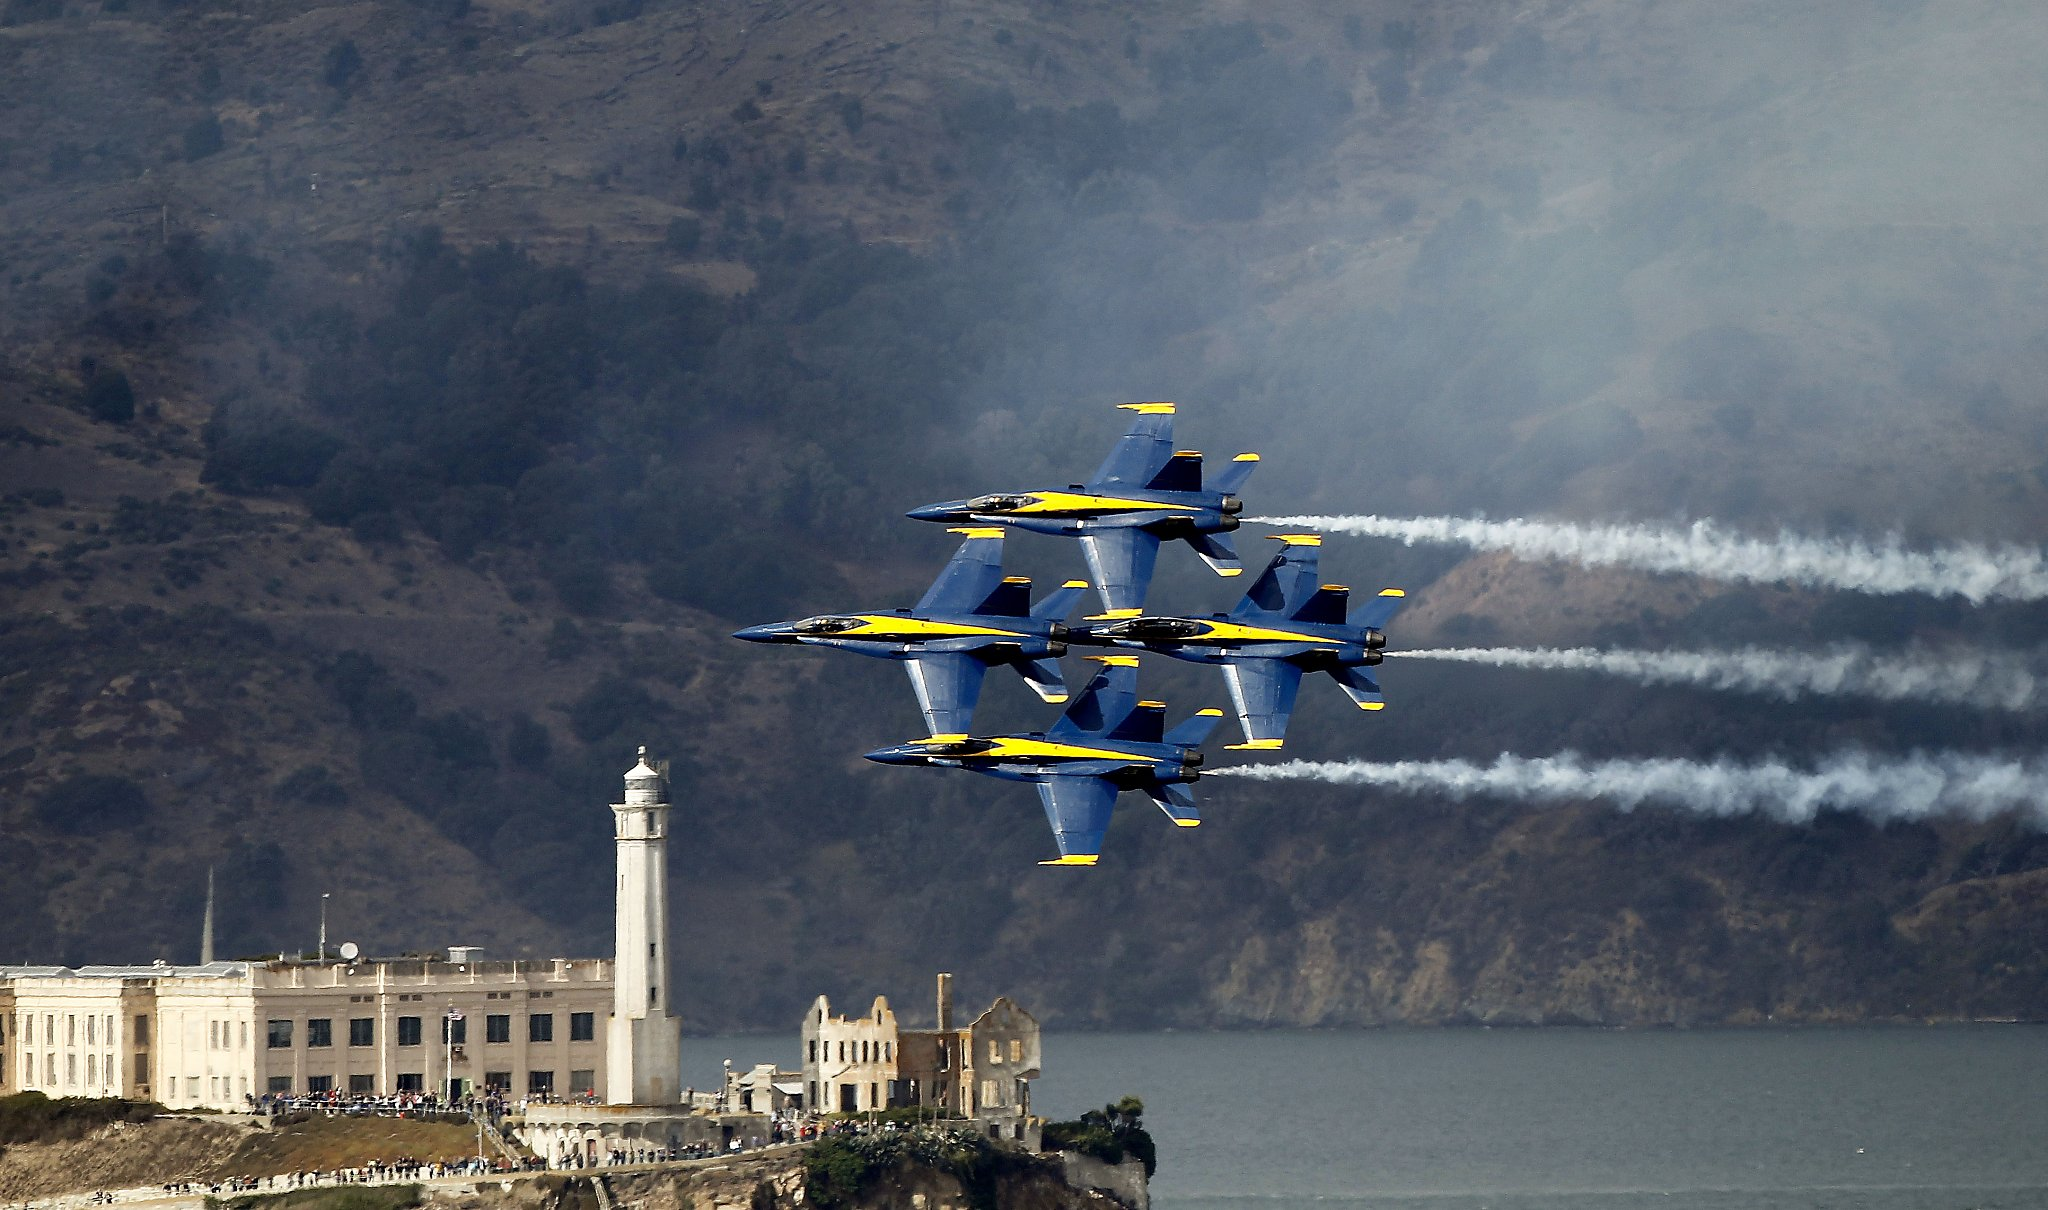 let's put a price tag on that fleet week blue angels show - sfgate